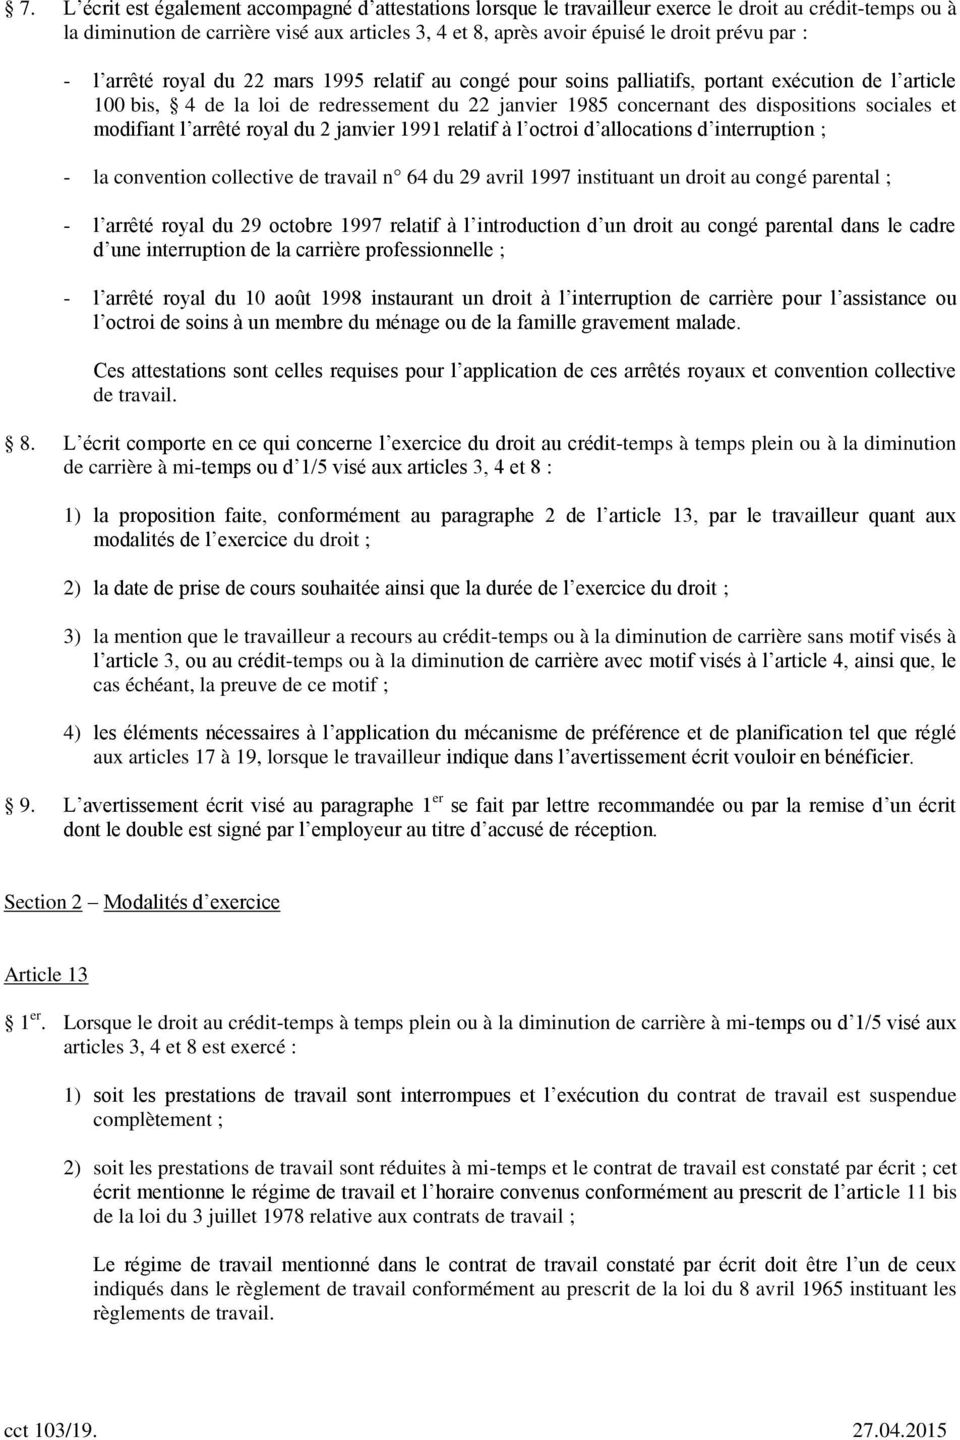 sociales et modifiant l arrêté royal du 2 janvier 1991 relatif à l octroi d allocations d interruption ; - la convention collective de travail n 64 du 29 avril 1997 instituant un droit au congé